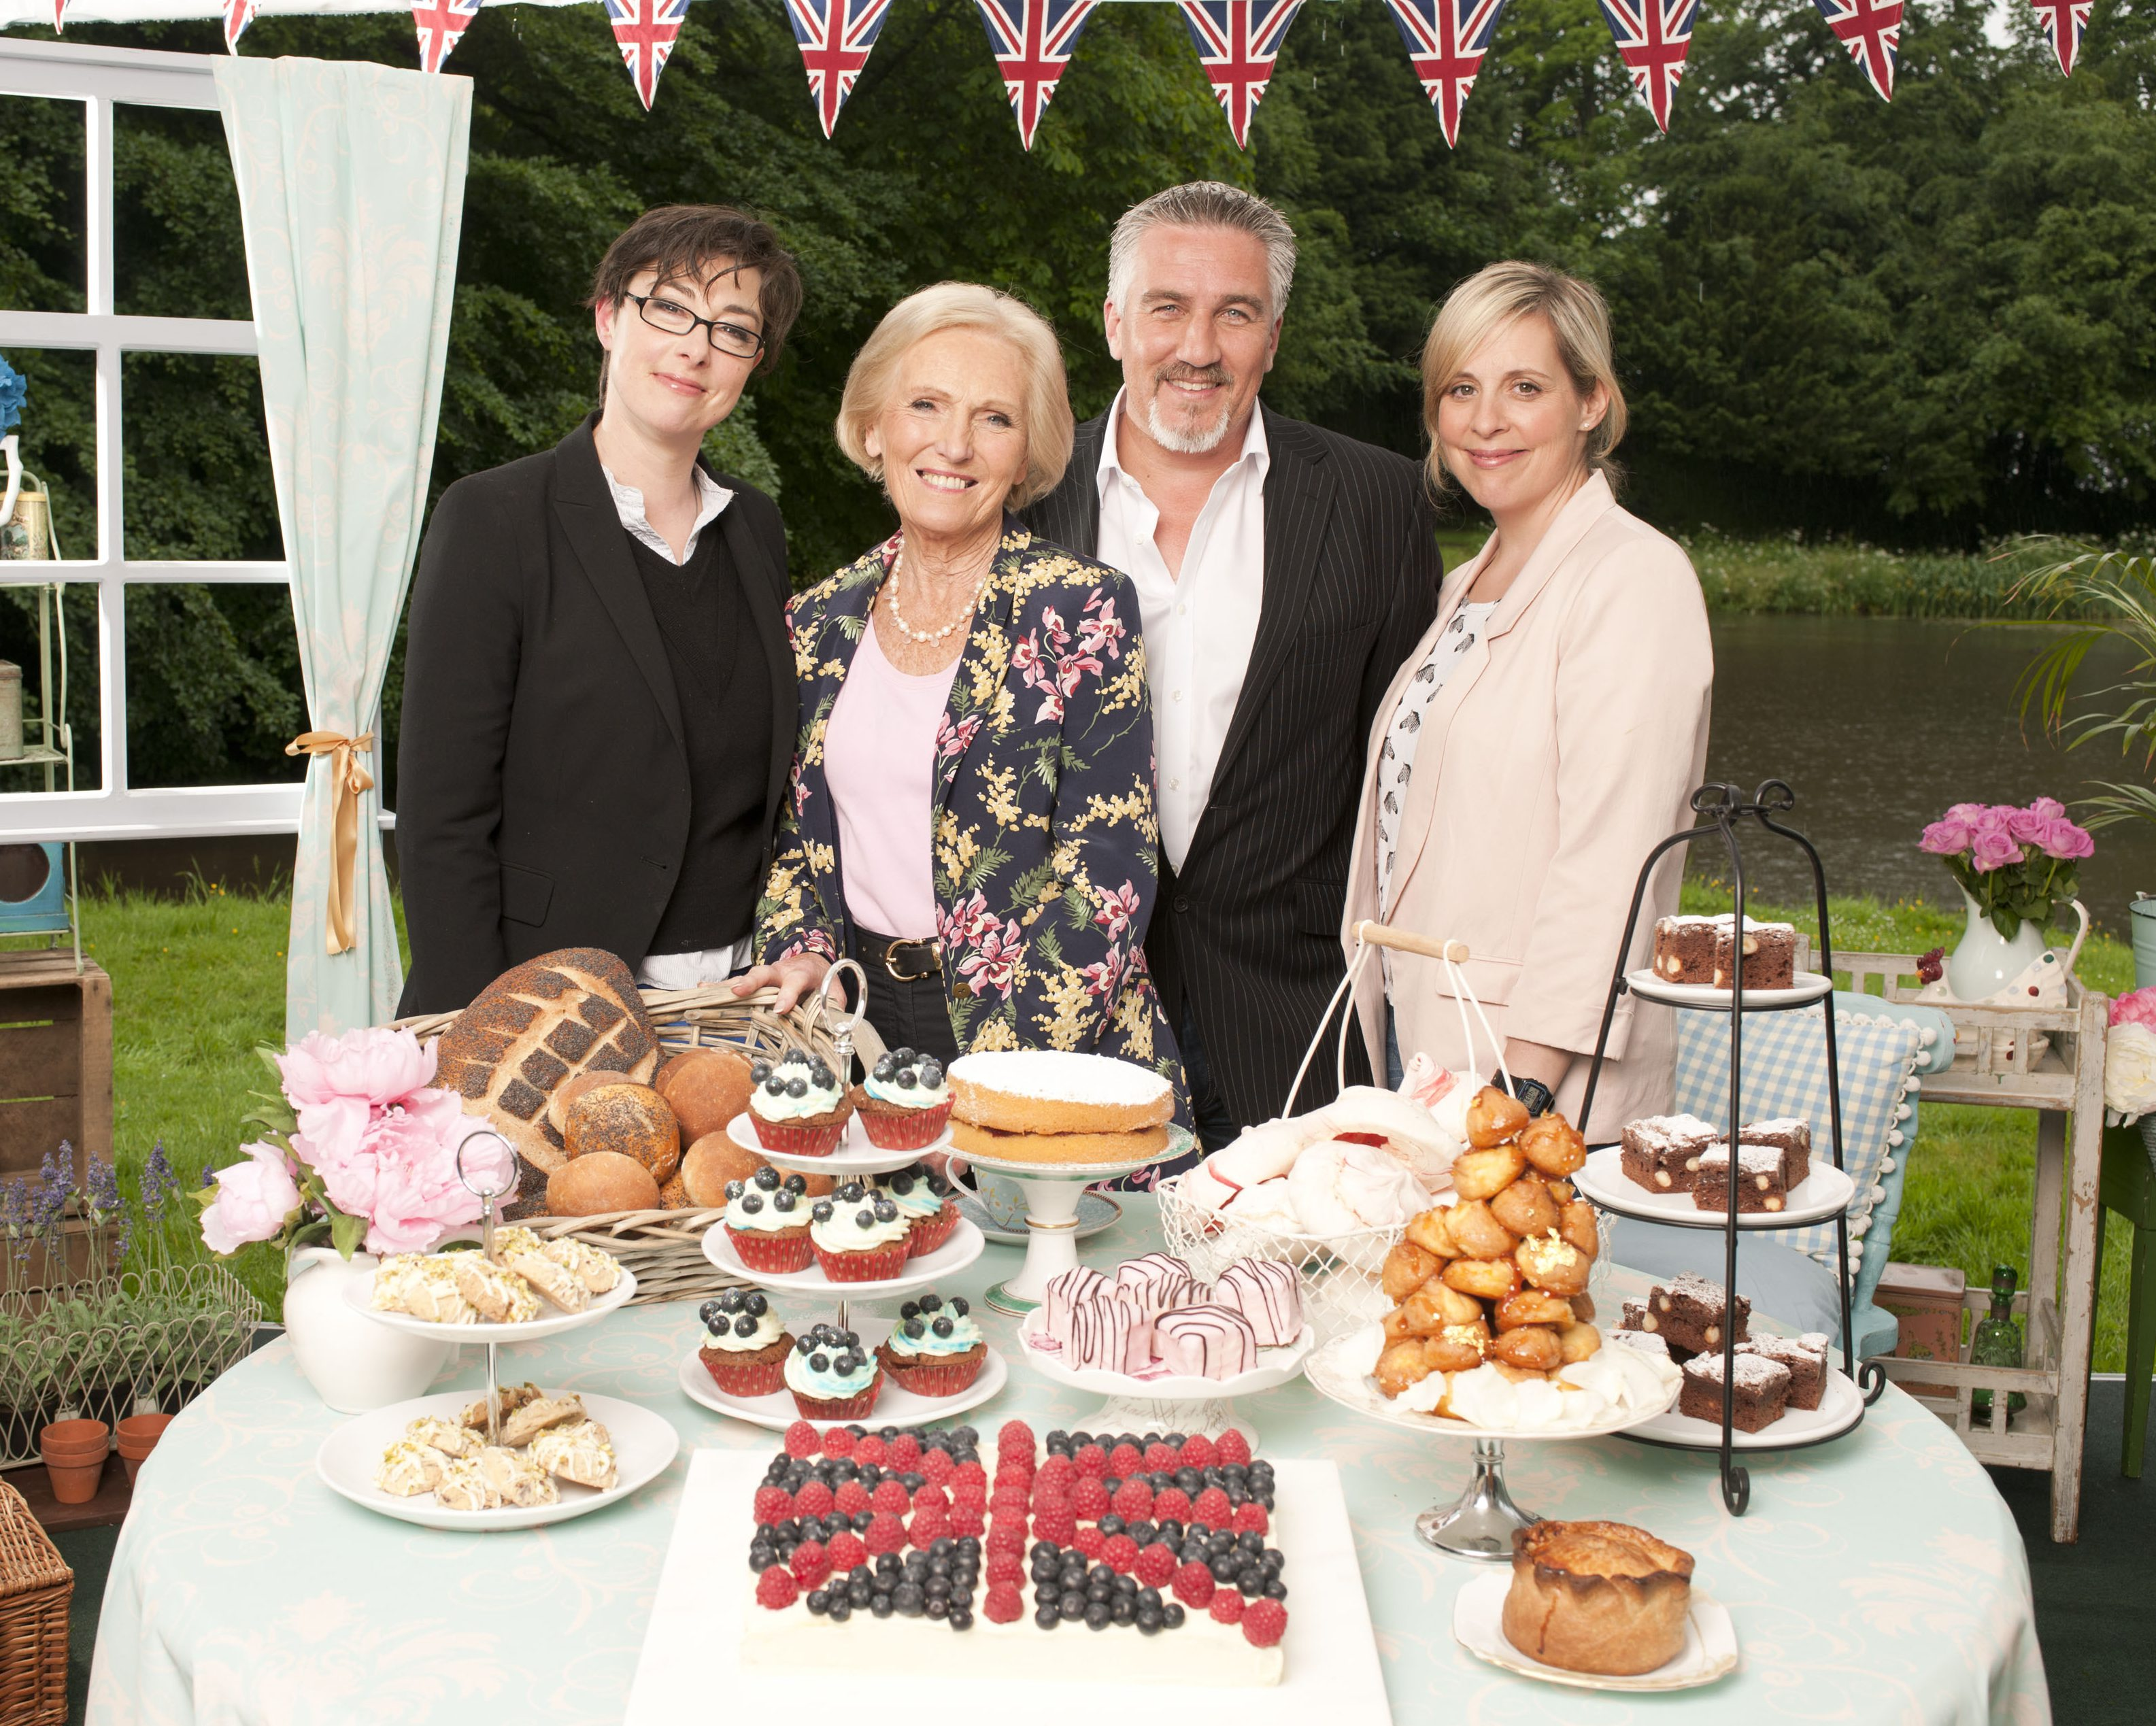 Programme Name: Great British Bake Off - TX: 14/08/2012 - Episode: n/a (No. n/a) - Embargoed for publication until: n/a - Picture Shows: The presenters and judges Sue Perkins, Mary Berry, Paul Hollywood, Mel Giedroyc - (C) Love Productions - Photographer: Amanda Searle